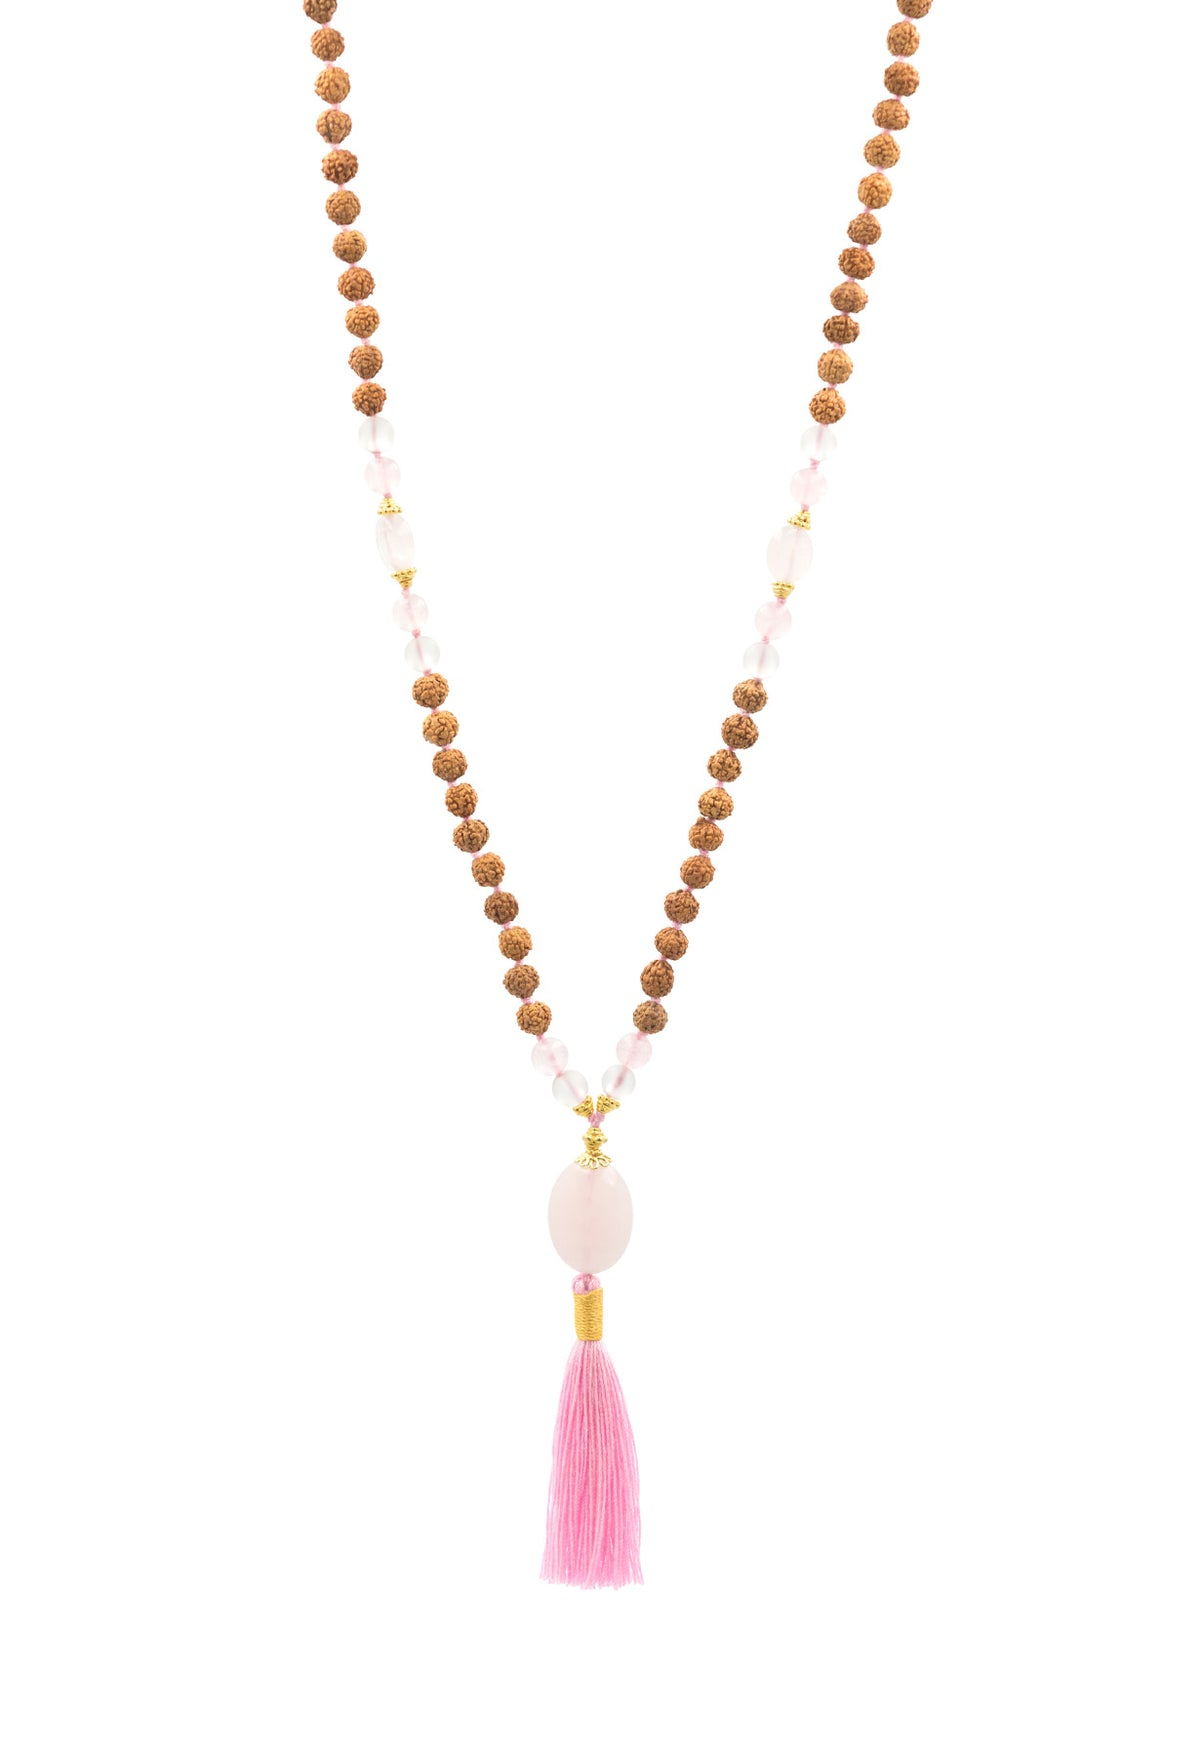 THE CROWN CHAKRA MALA FOR HER